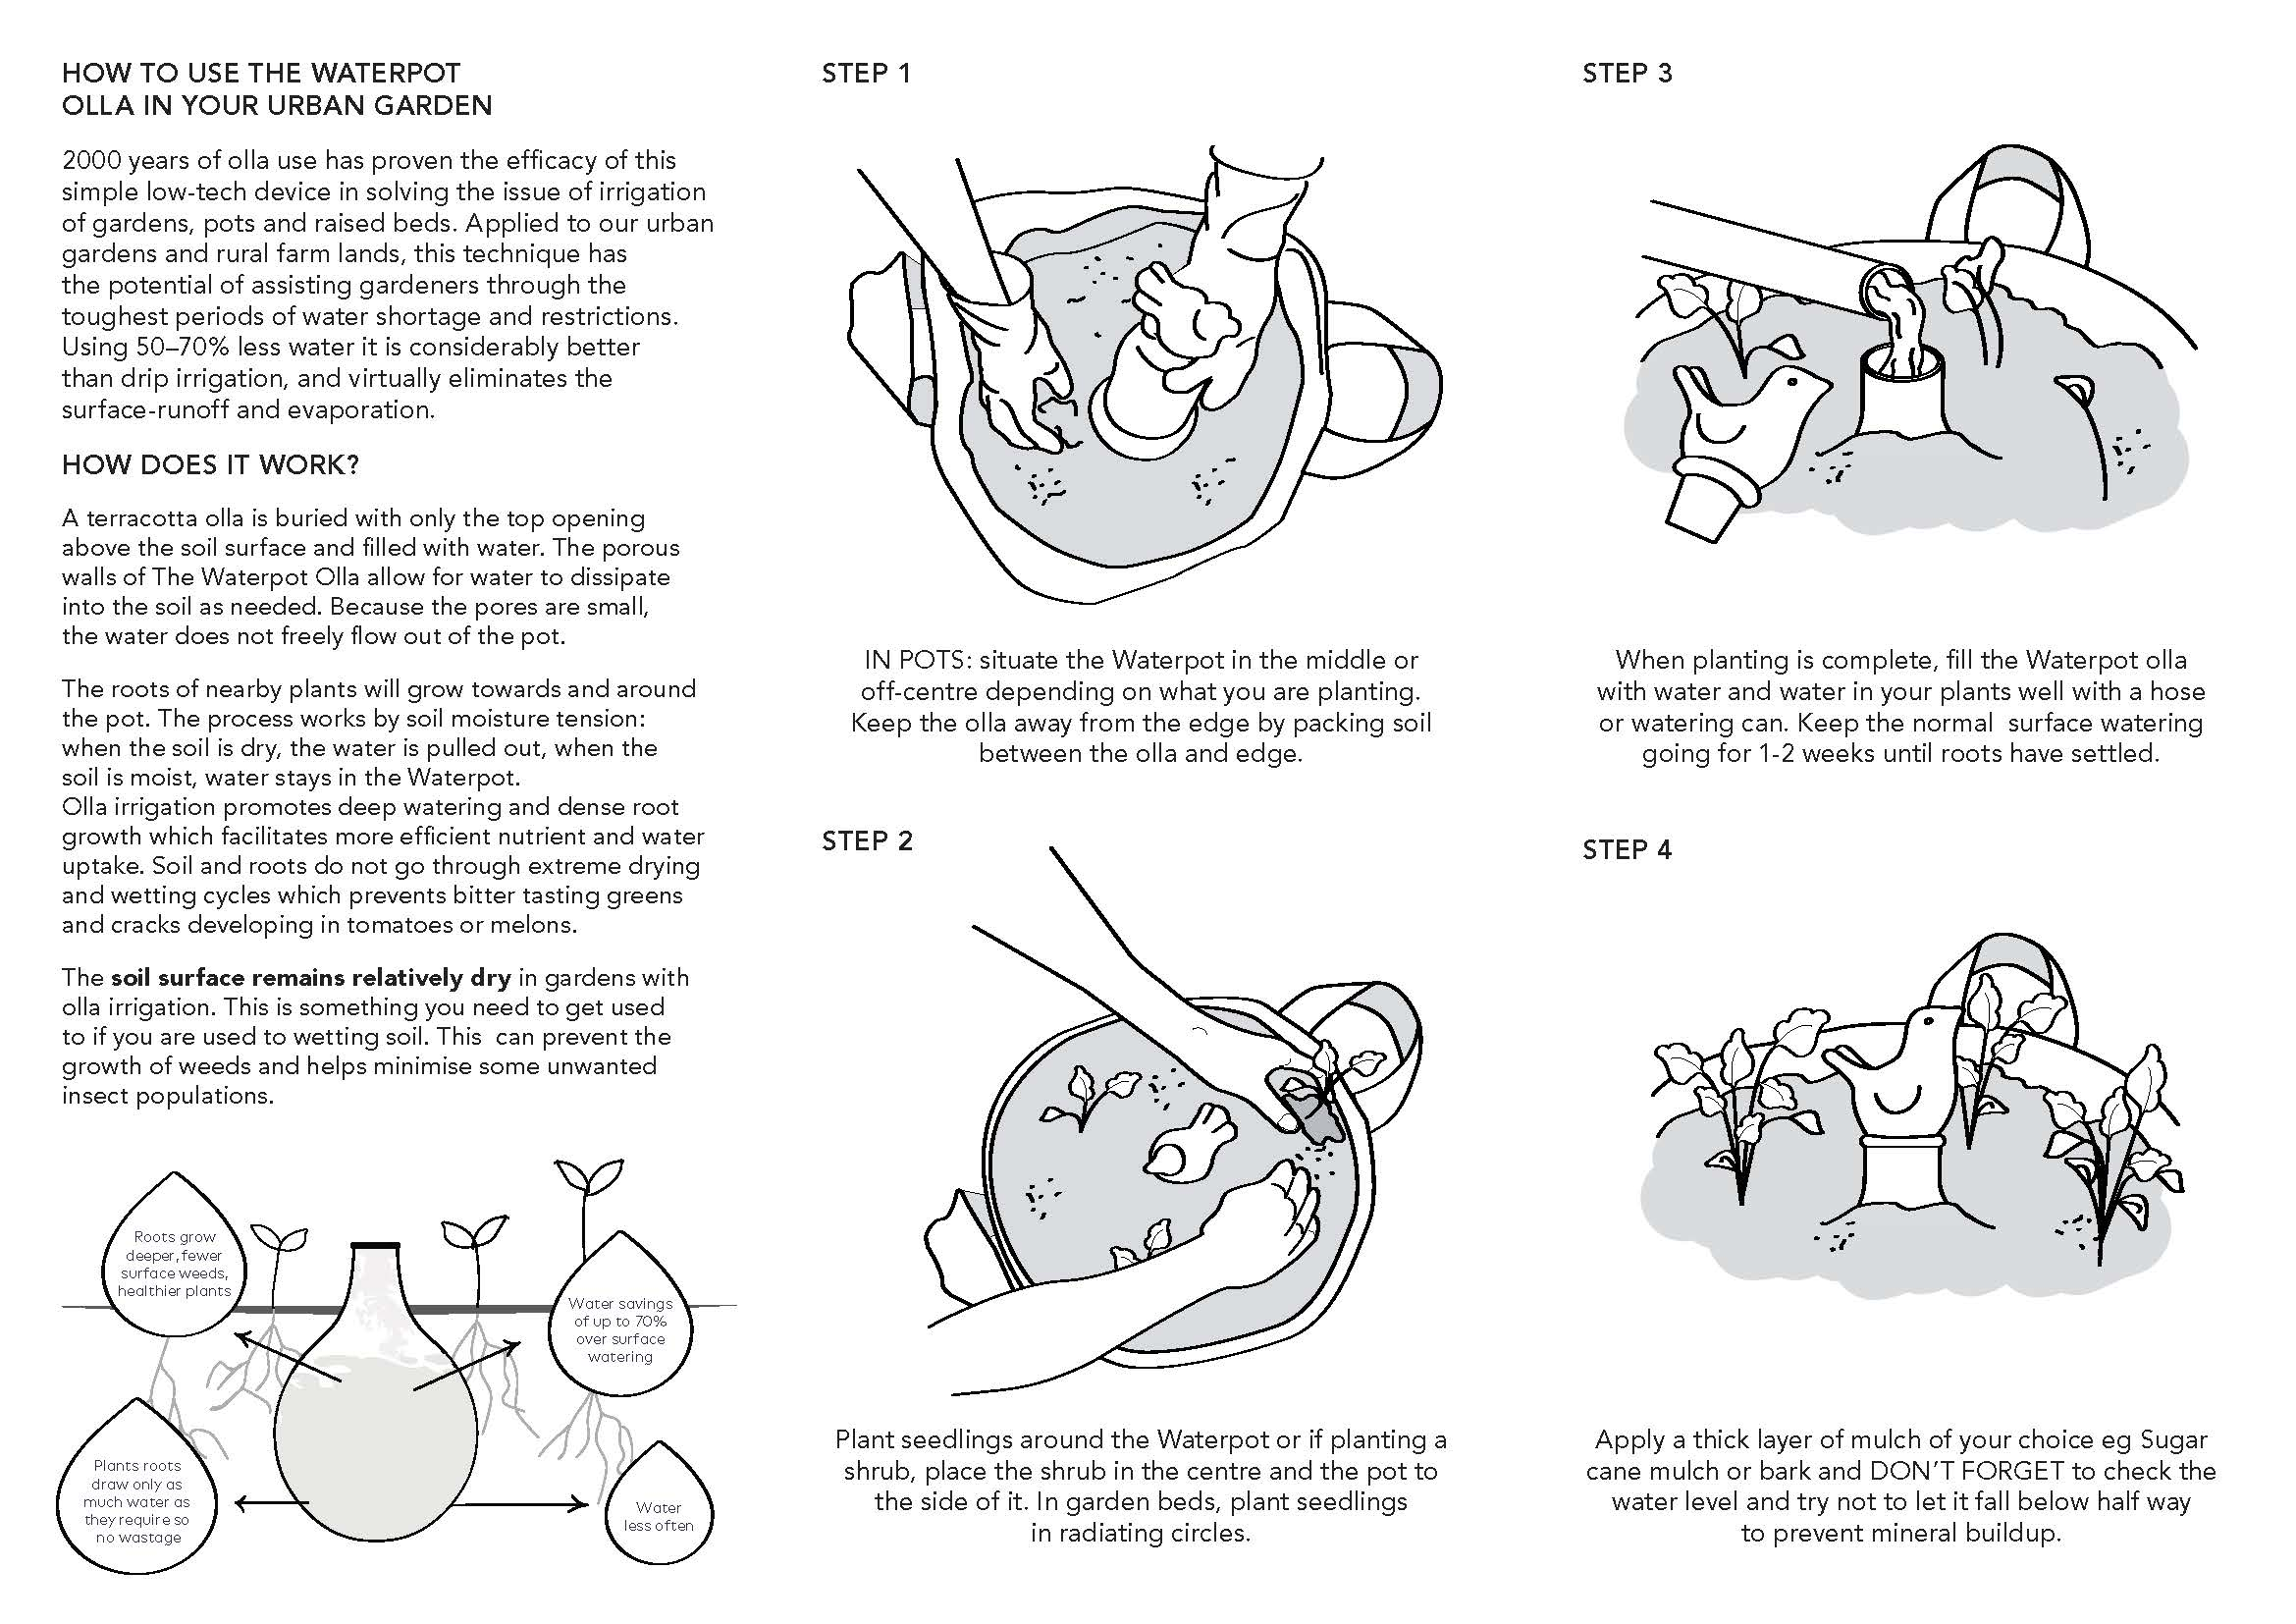 Waterpot Olla Instructions Page 2